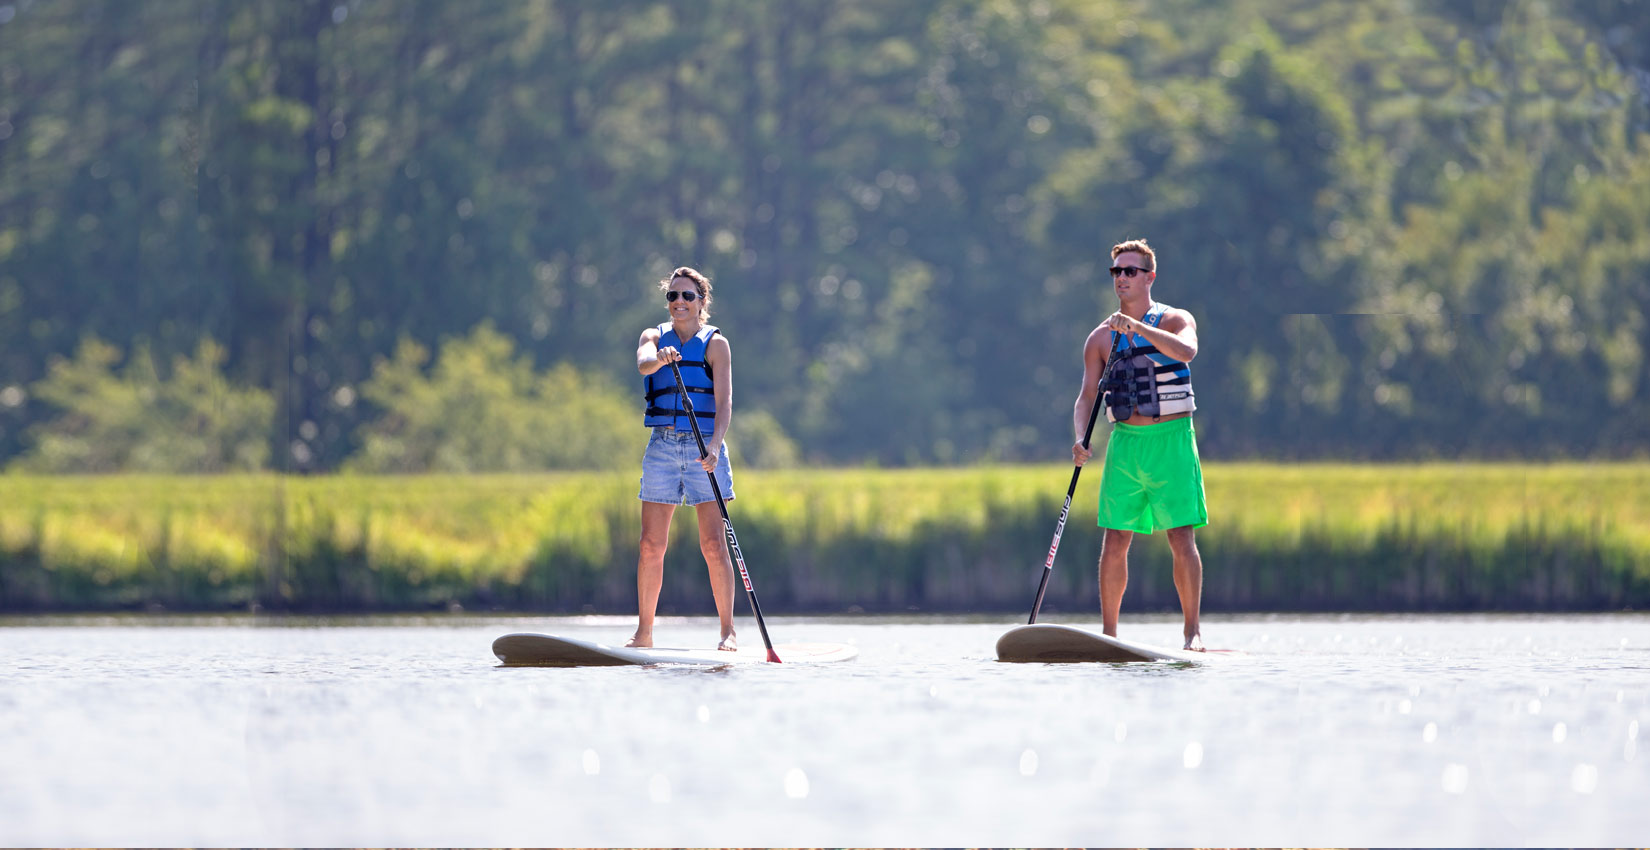 Stand Up Paddle Boarding at Lake Monocan at Wintergreen Resort